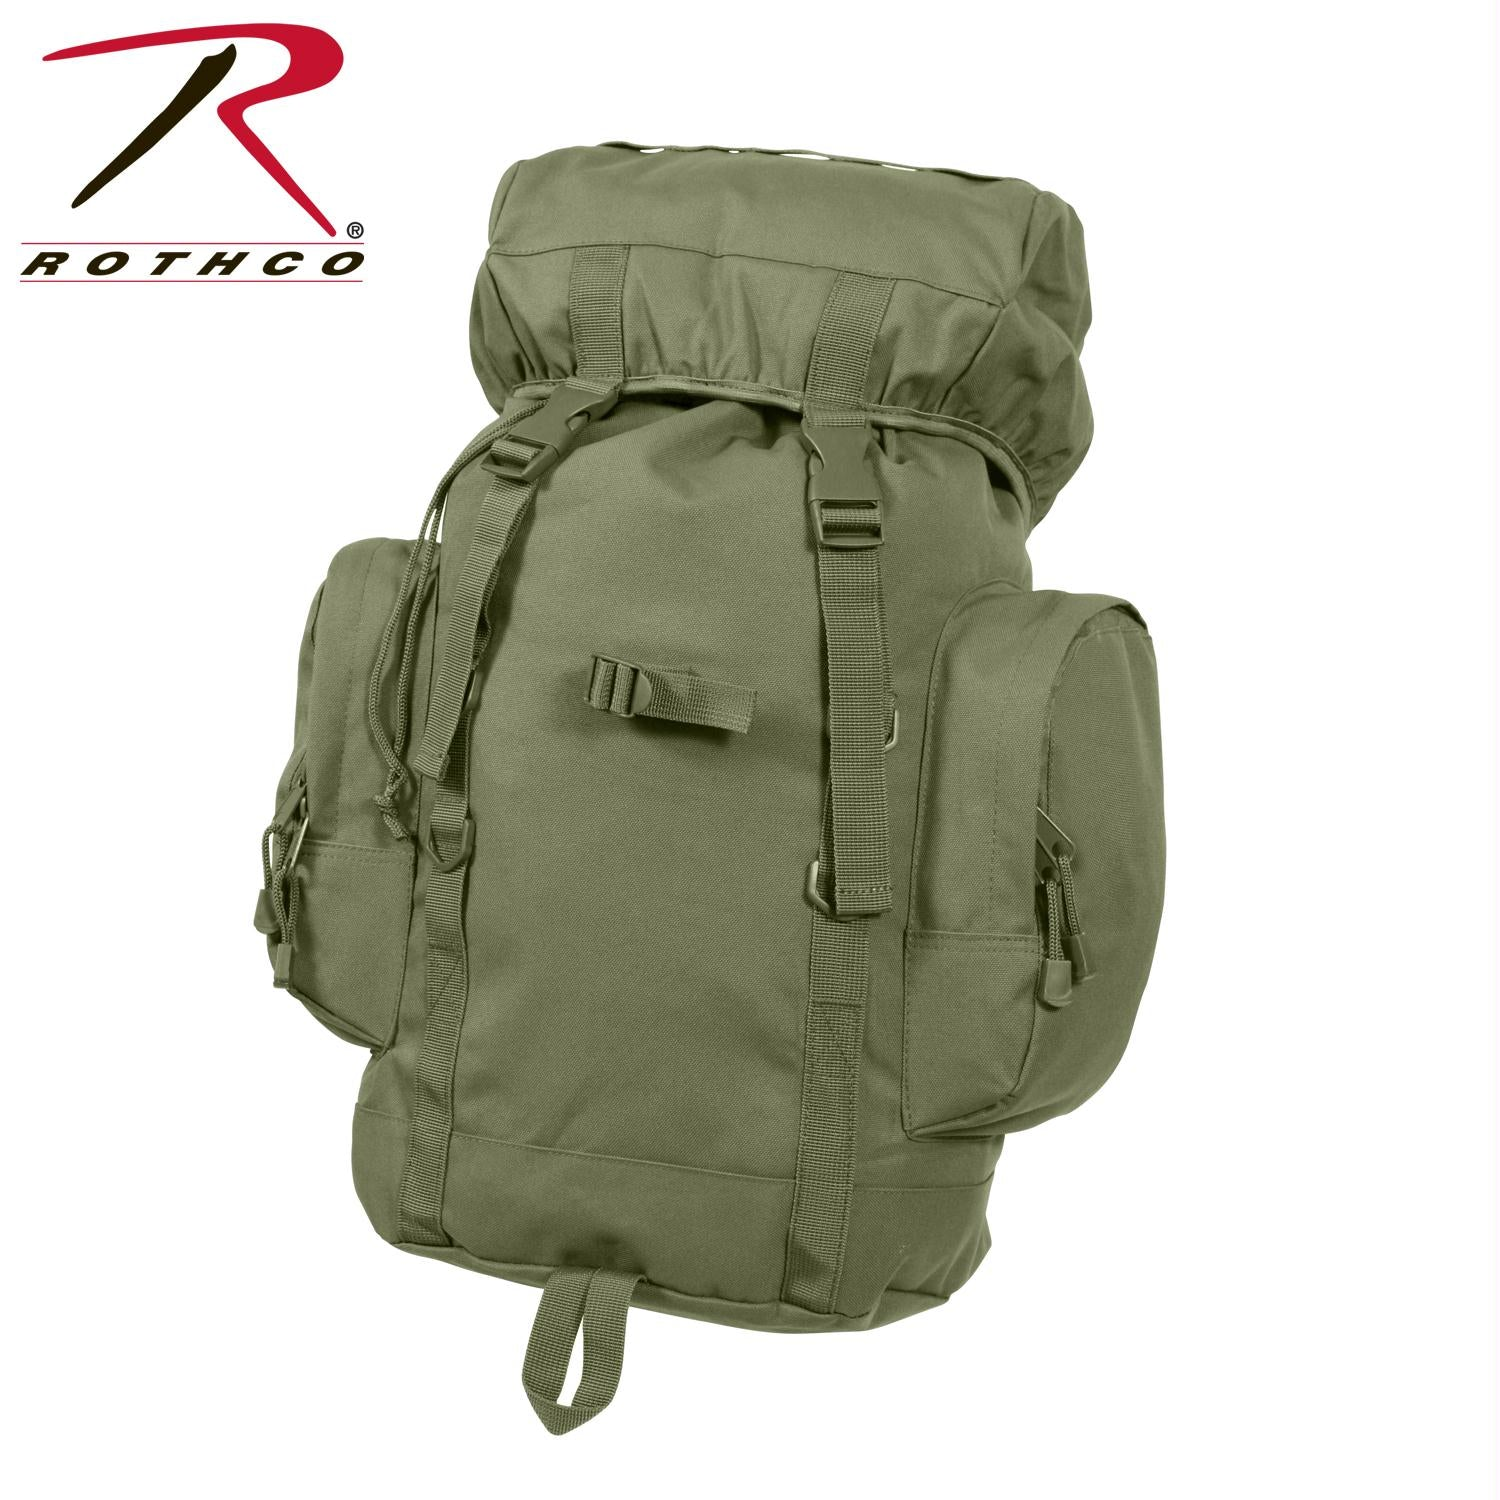 Rothco 25L Tactical Backpack - Olive Drab